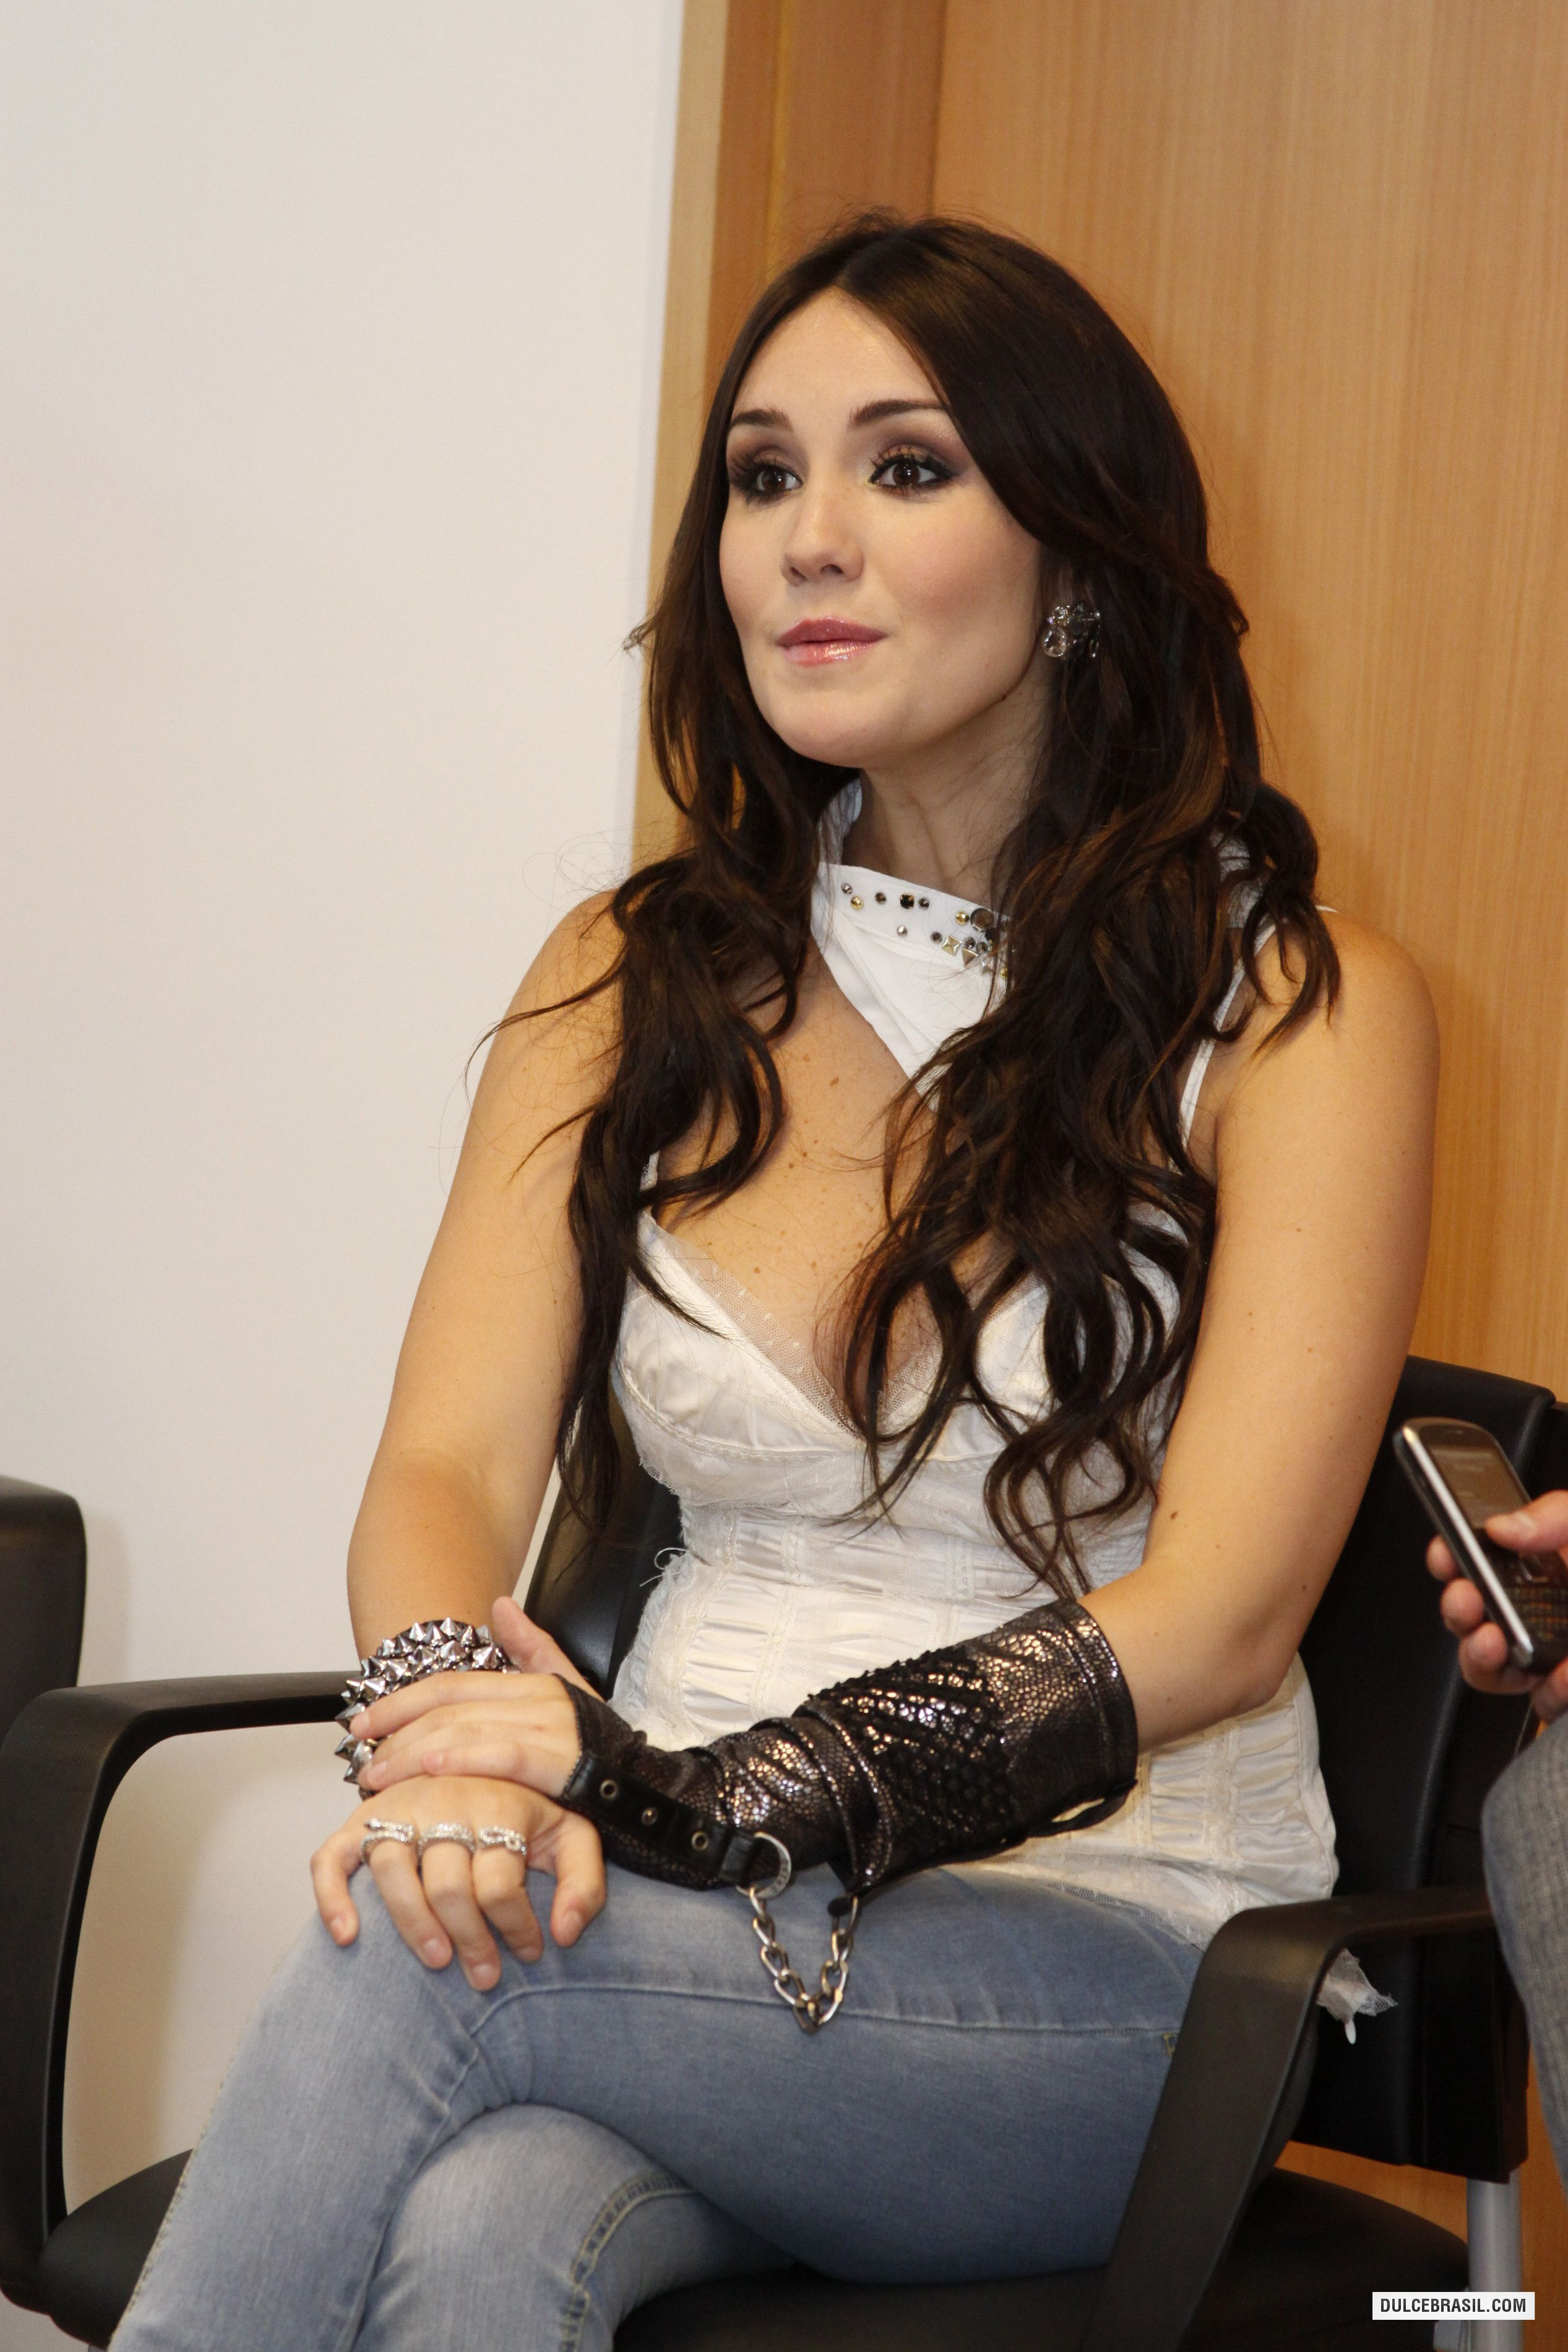 from Kamdyn naked pic of dulce maria